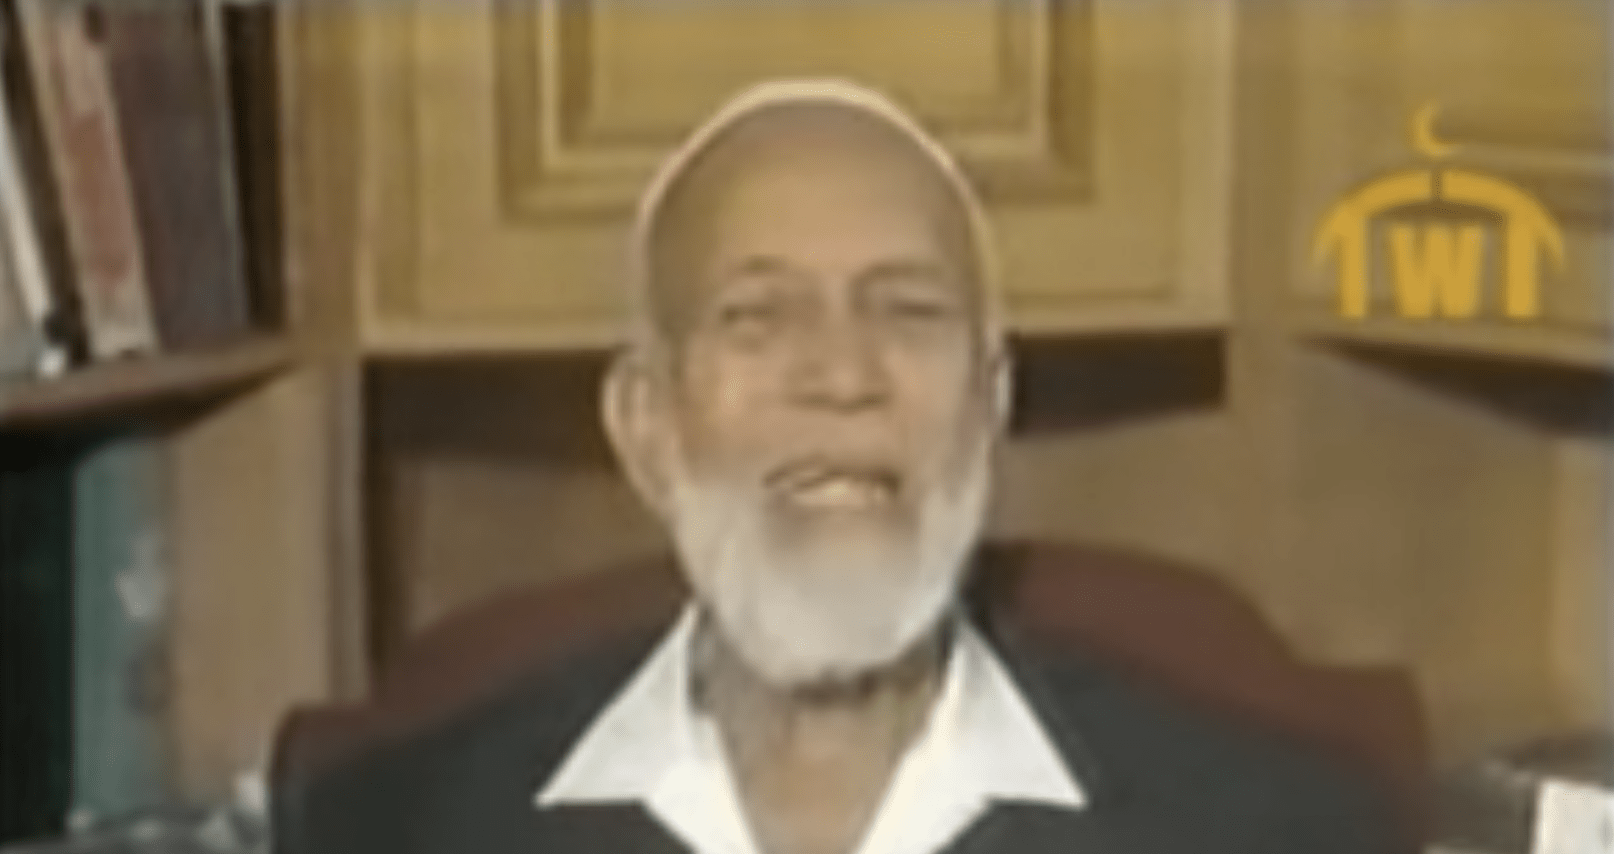 Ahmed Deedat – The life of Shaykh Ahmed Deedat